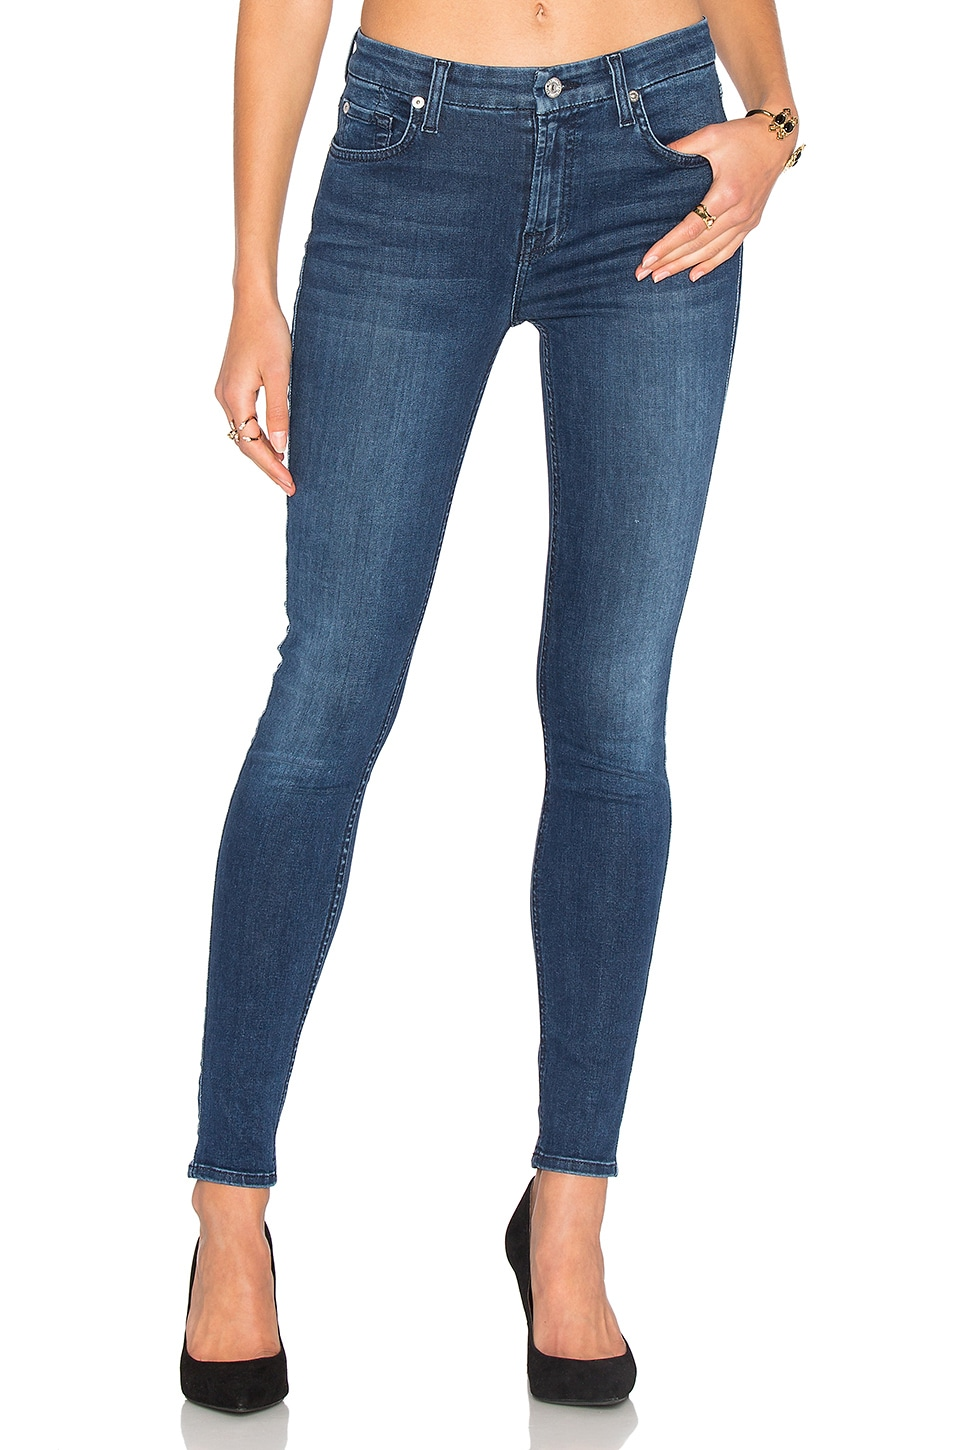 The Skinny by 7 For All Mankind